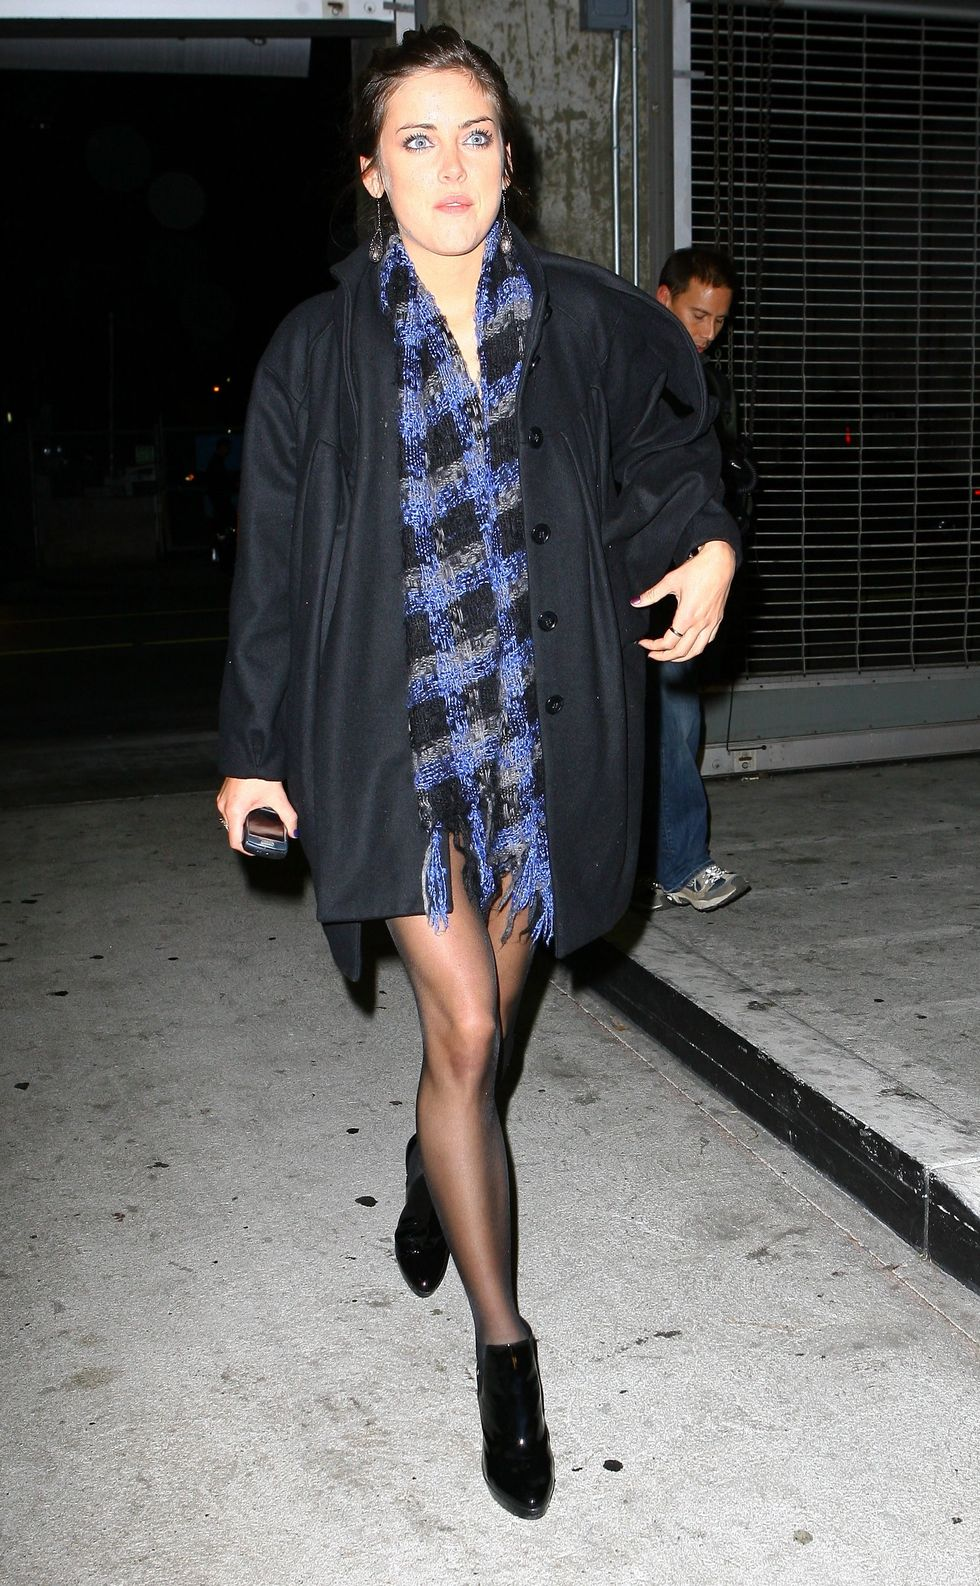 jessica-stroup-musicians-give-back-event-in-hollywood-01